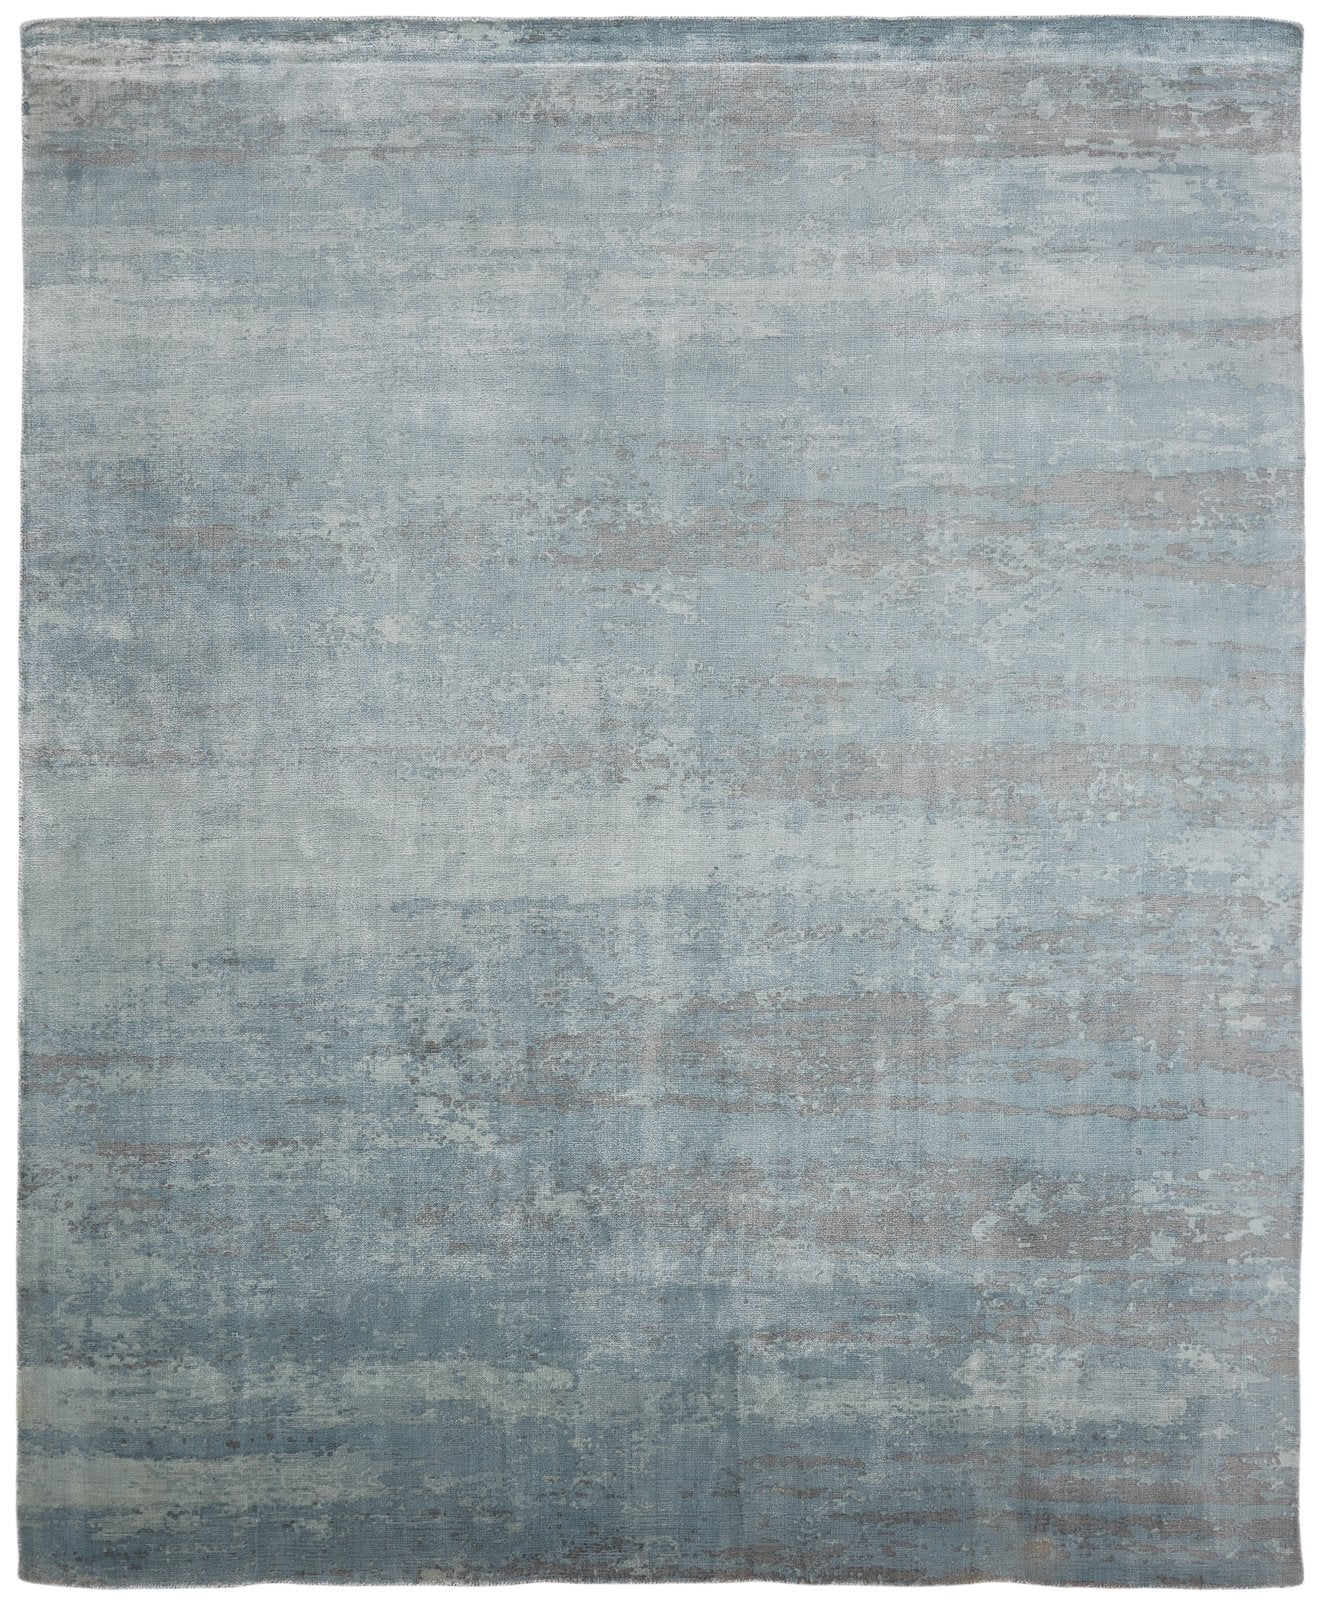 Nocturne Spa Hand-Loomed Area Rug - AllRugs